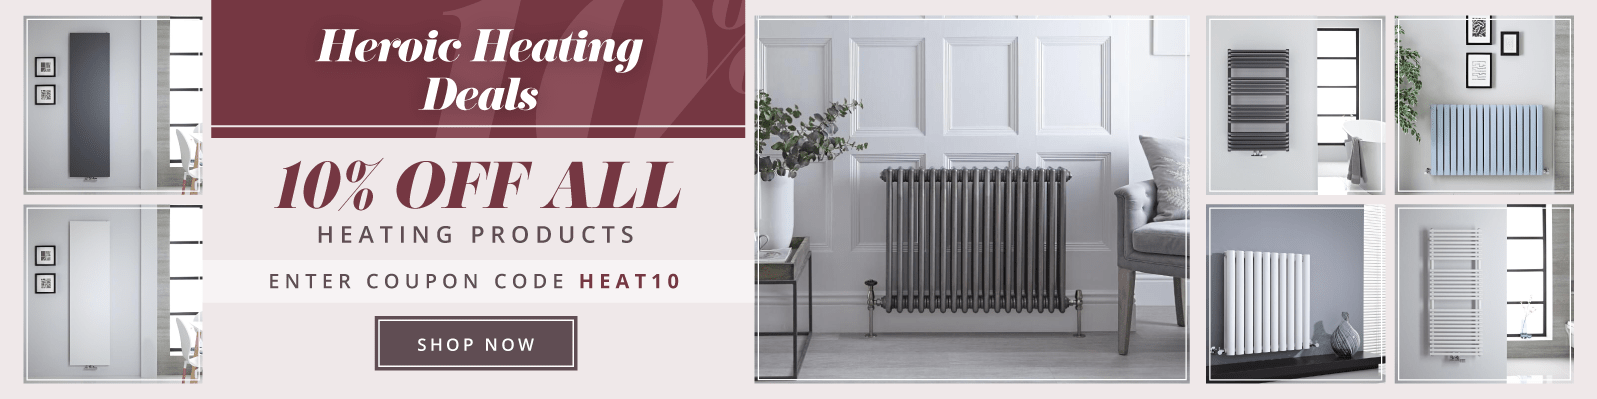 Heroic Heating Deals - 10% off all heating products - Enter coupon code HEAT10